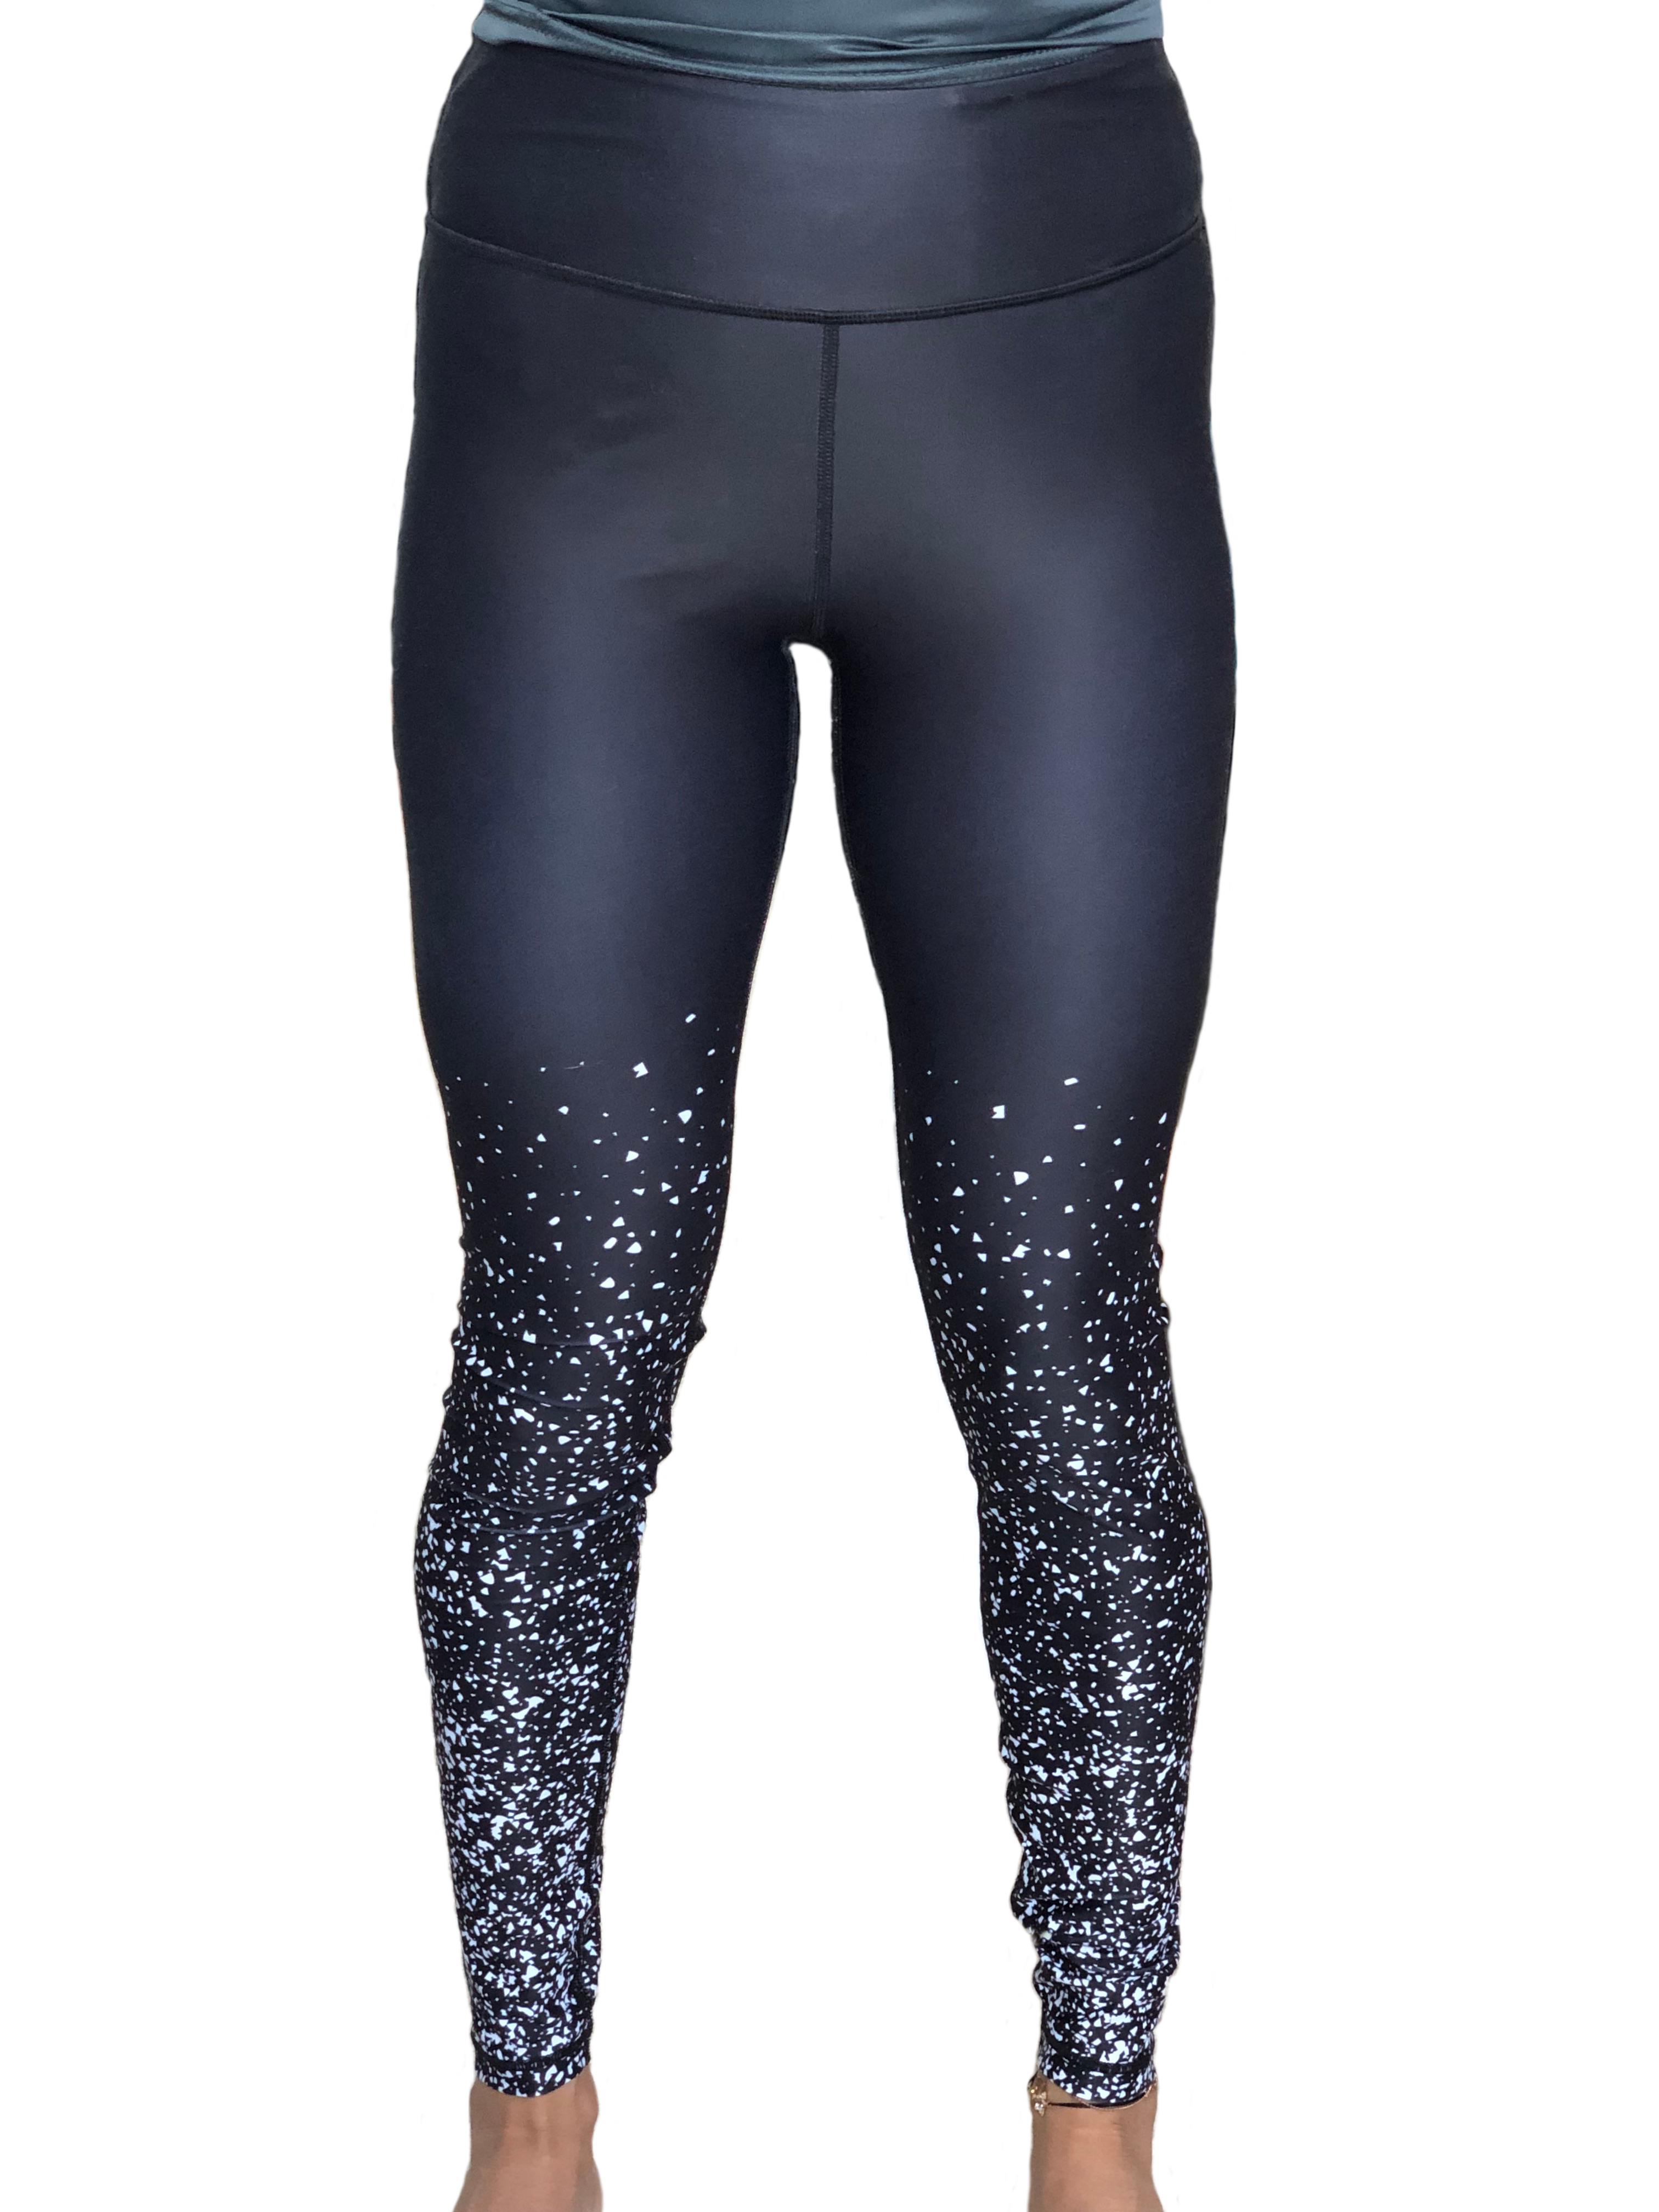 Black Sparkly leggings front view